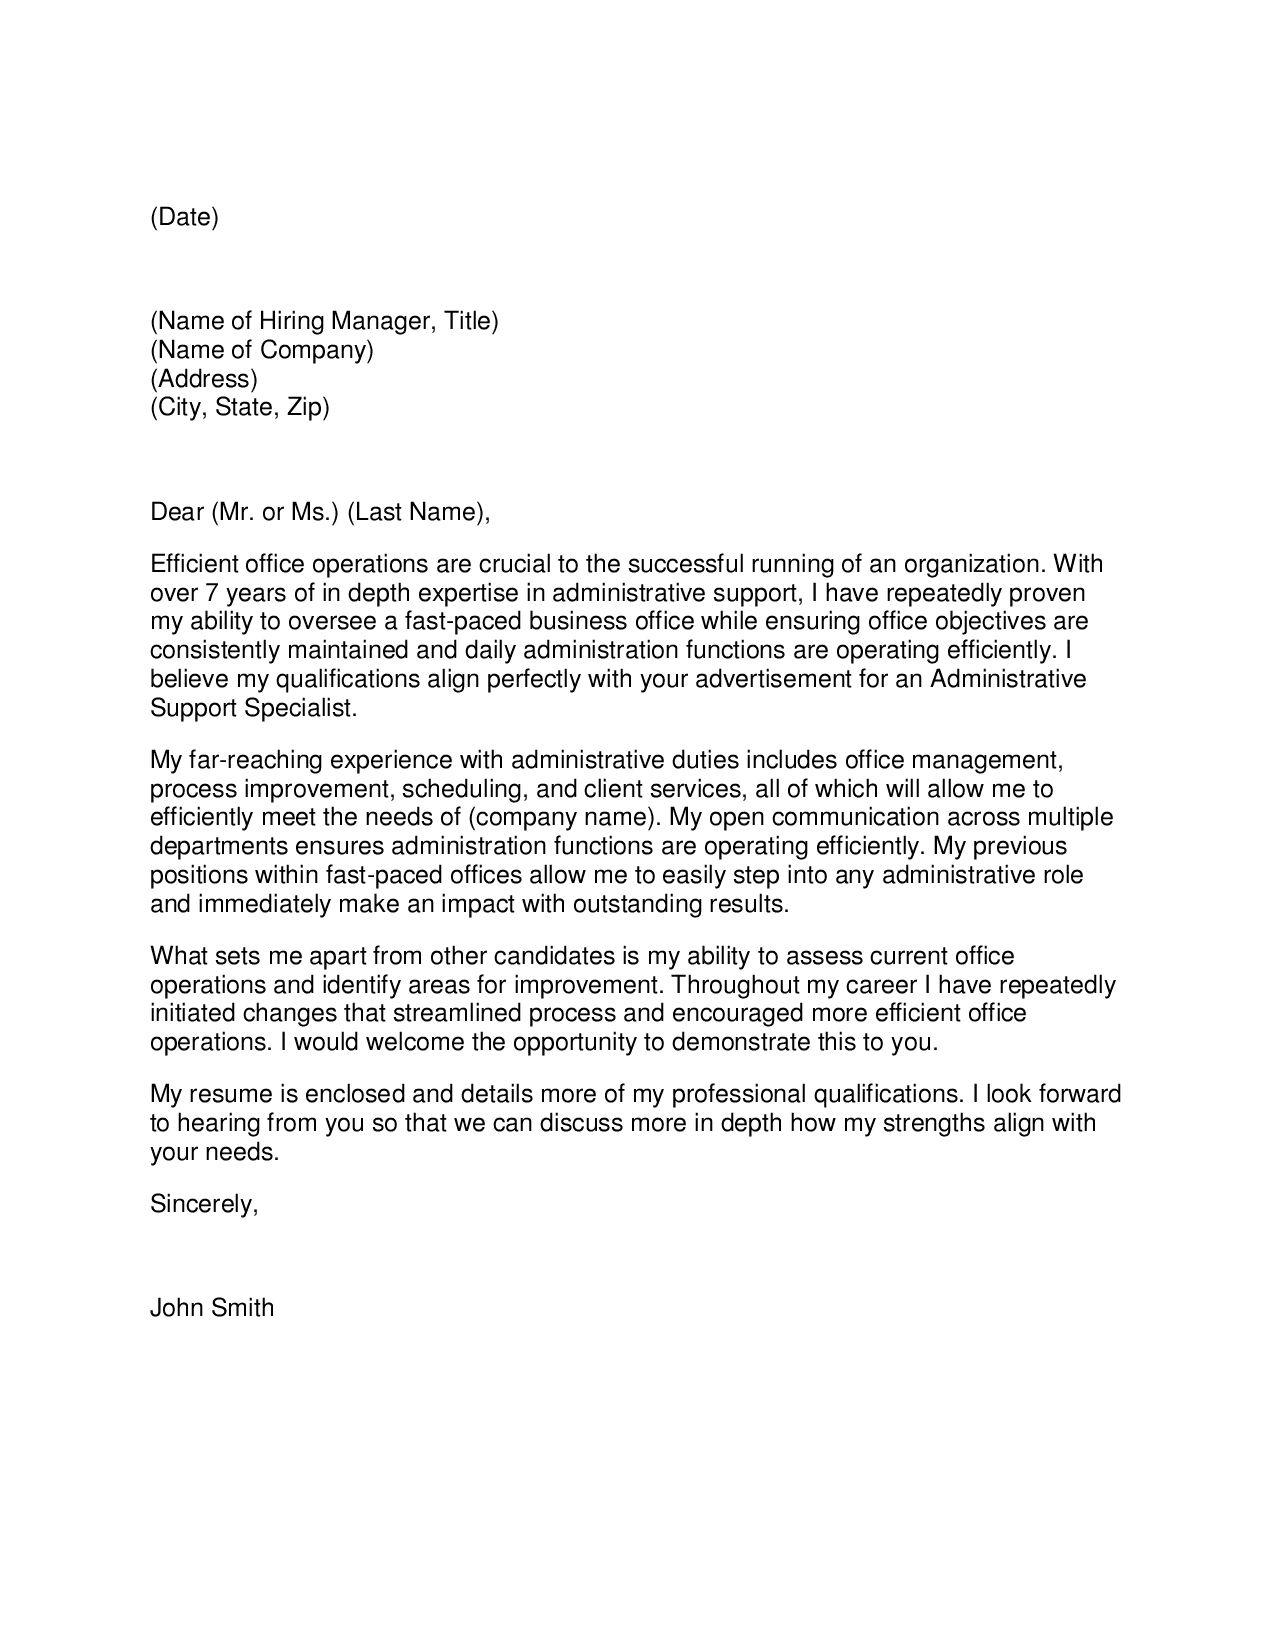 Two Great Cover Letter Examples Blue Sky Resumes Blog Ascend Surgical